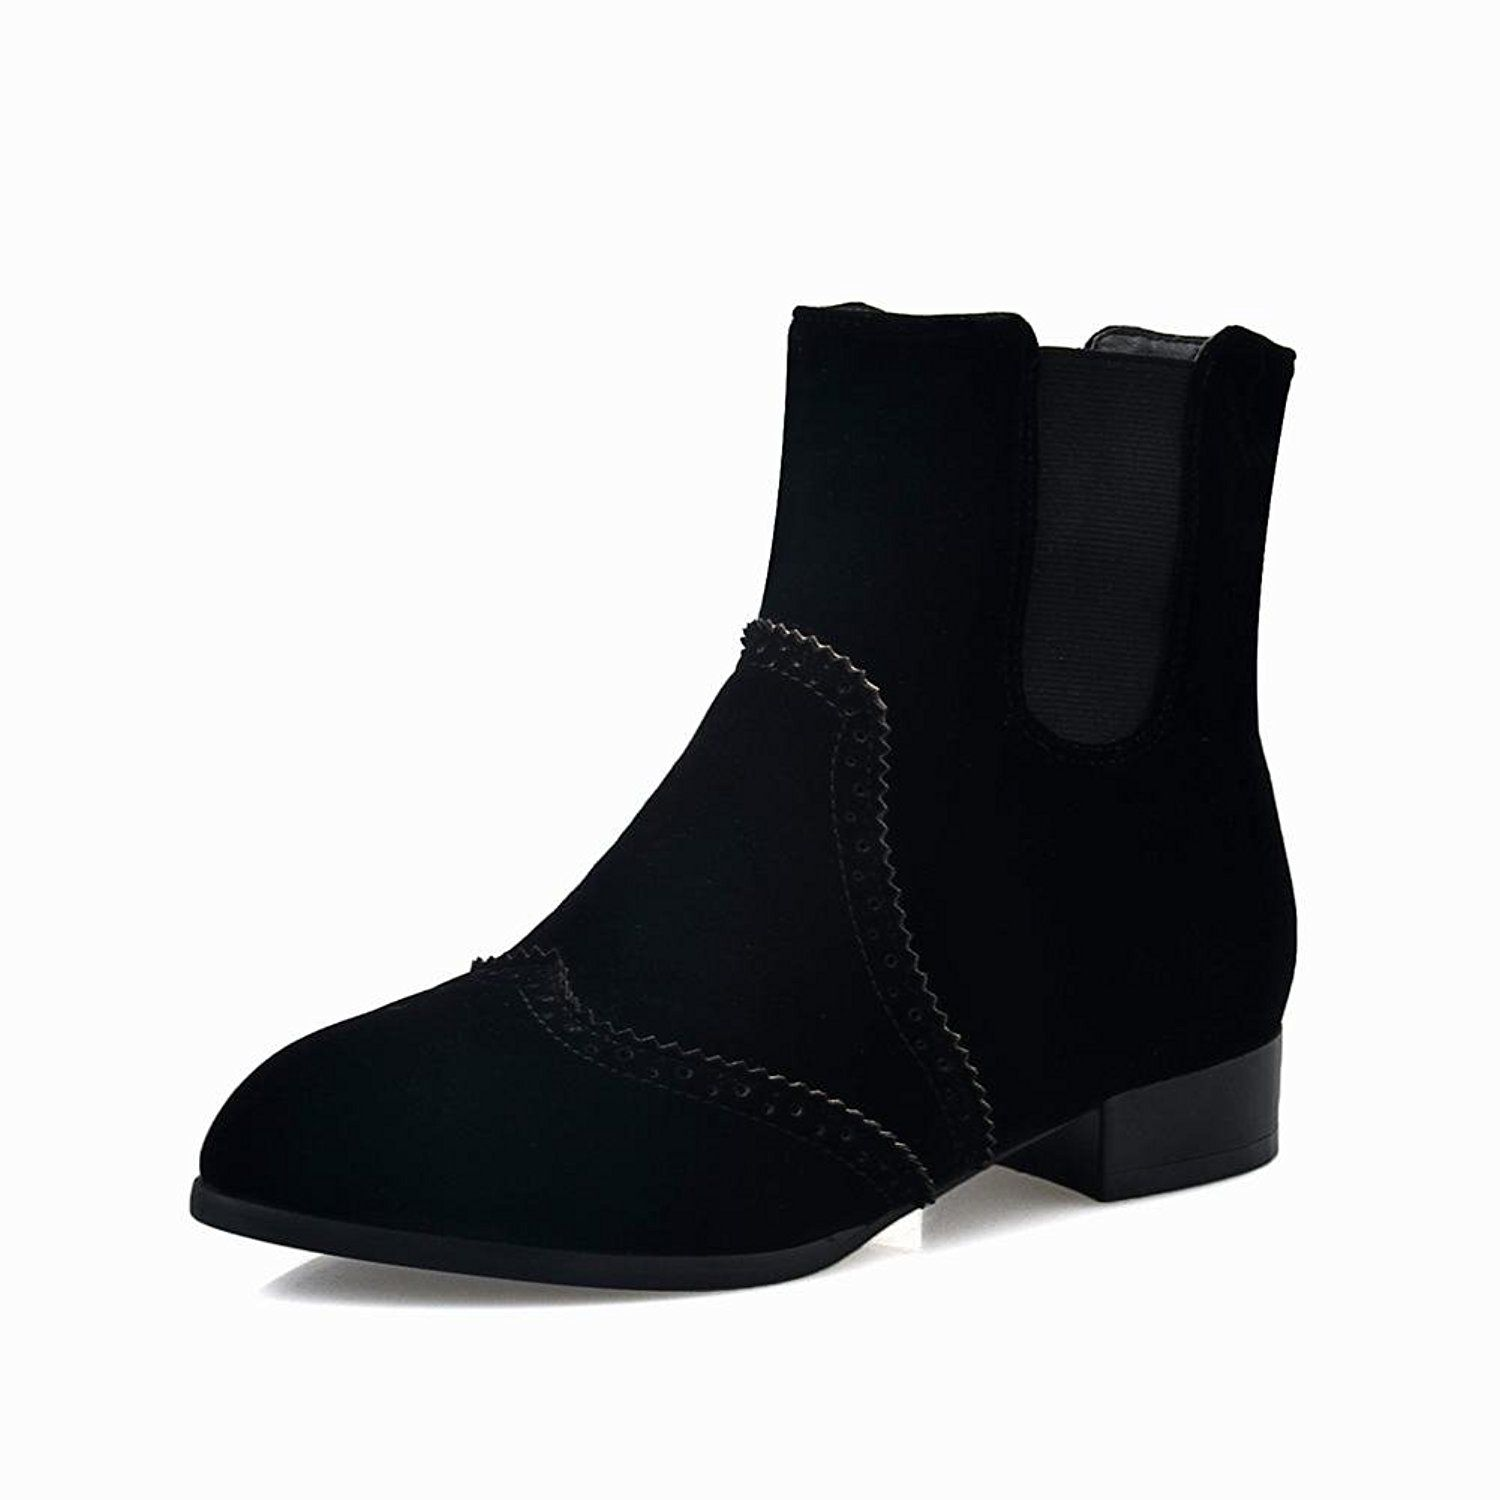 Charm Foot Women's Fashion Nubuck Chunky Low-heel Ankle-high Chelsea Boots ** Click image to review more details.